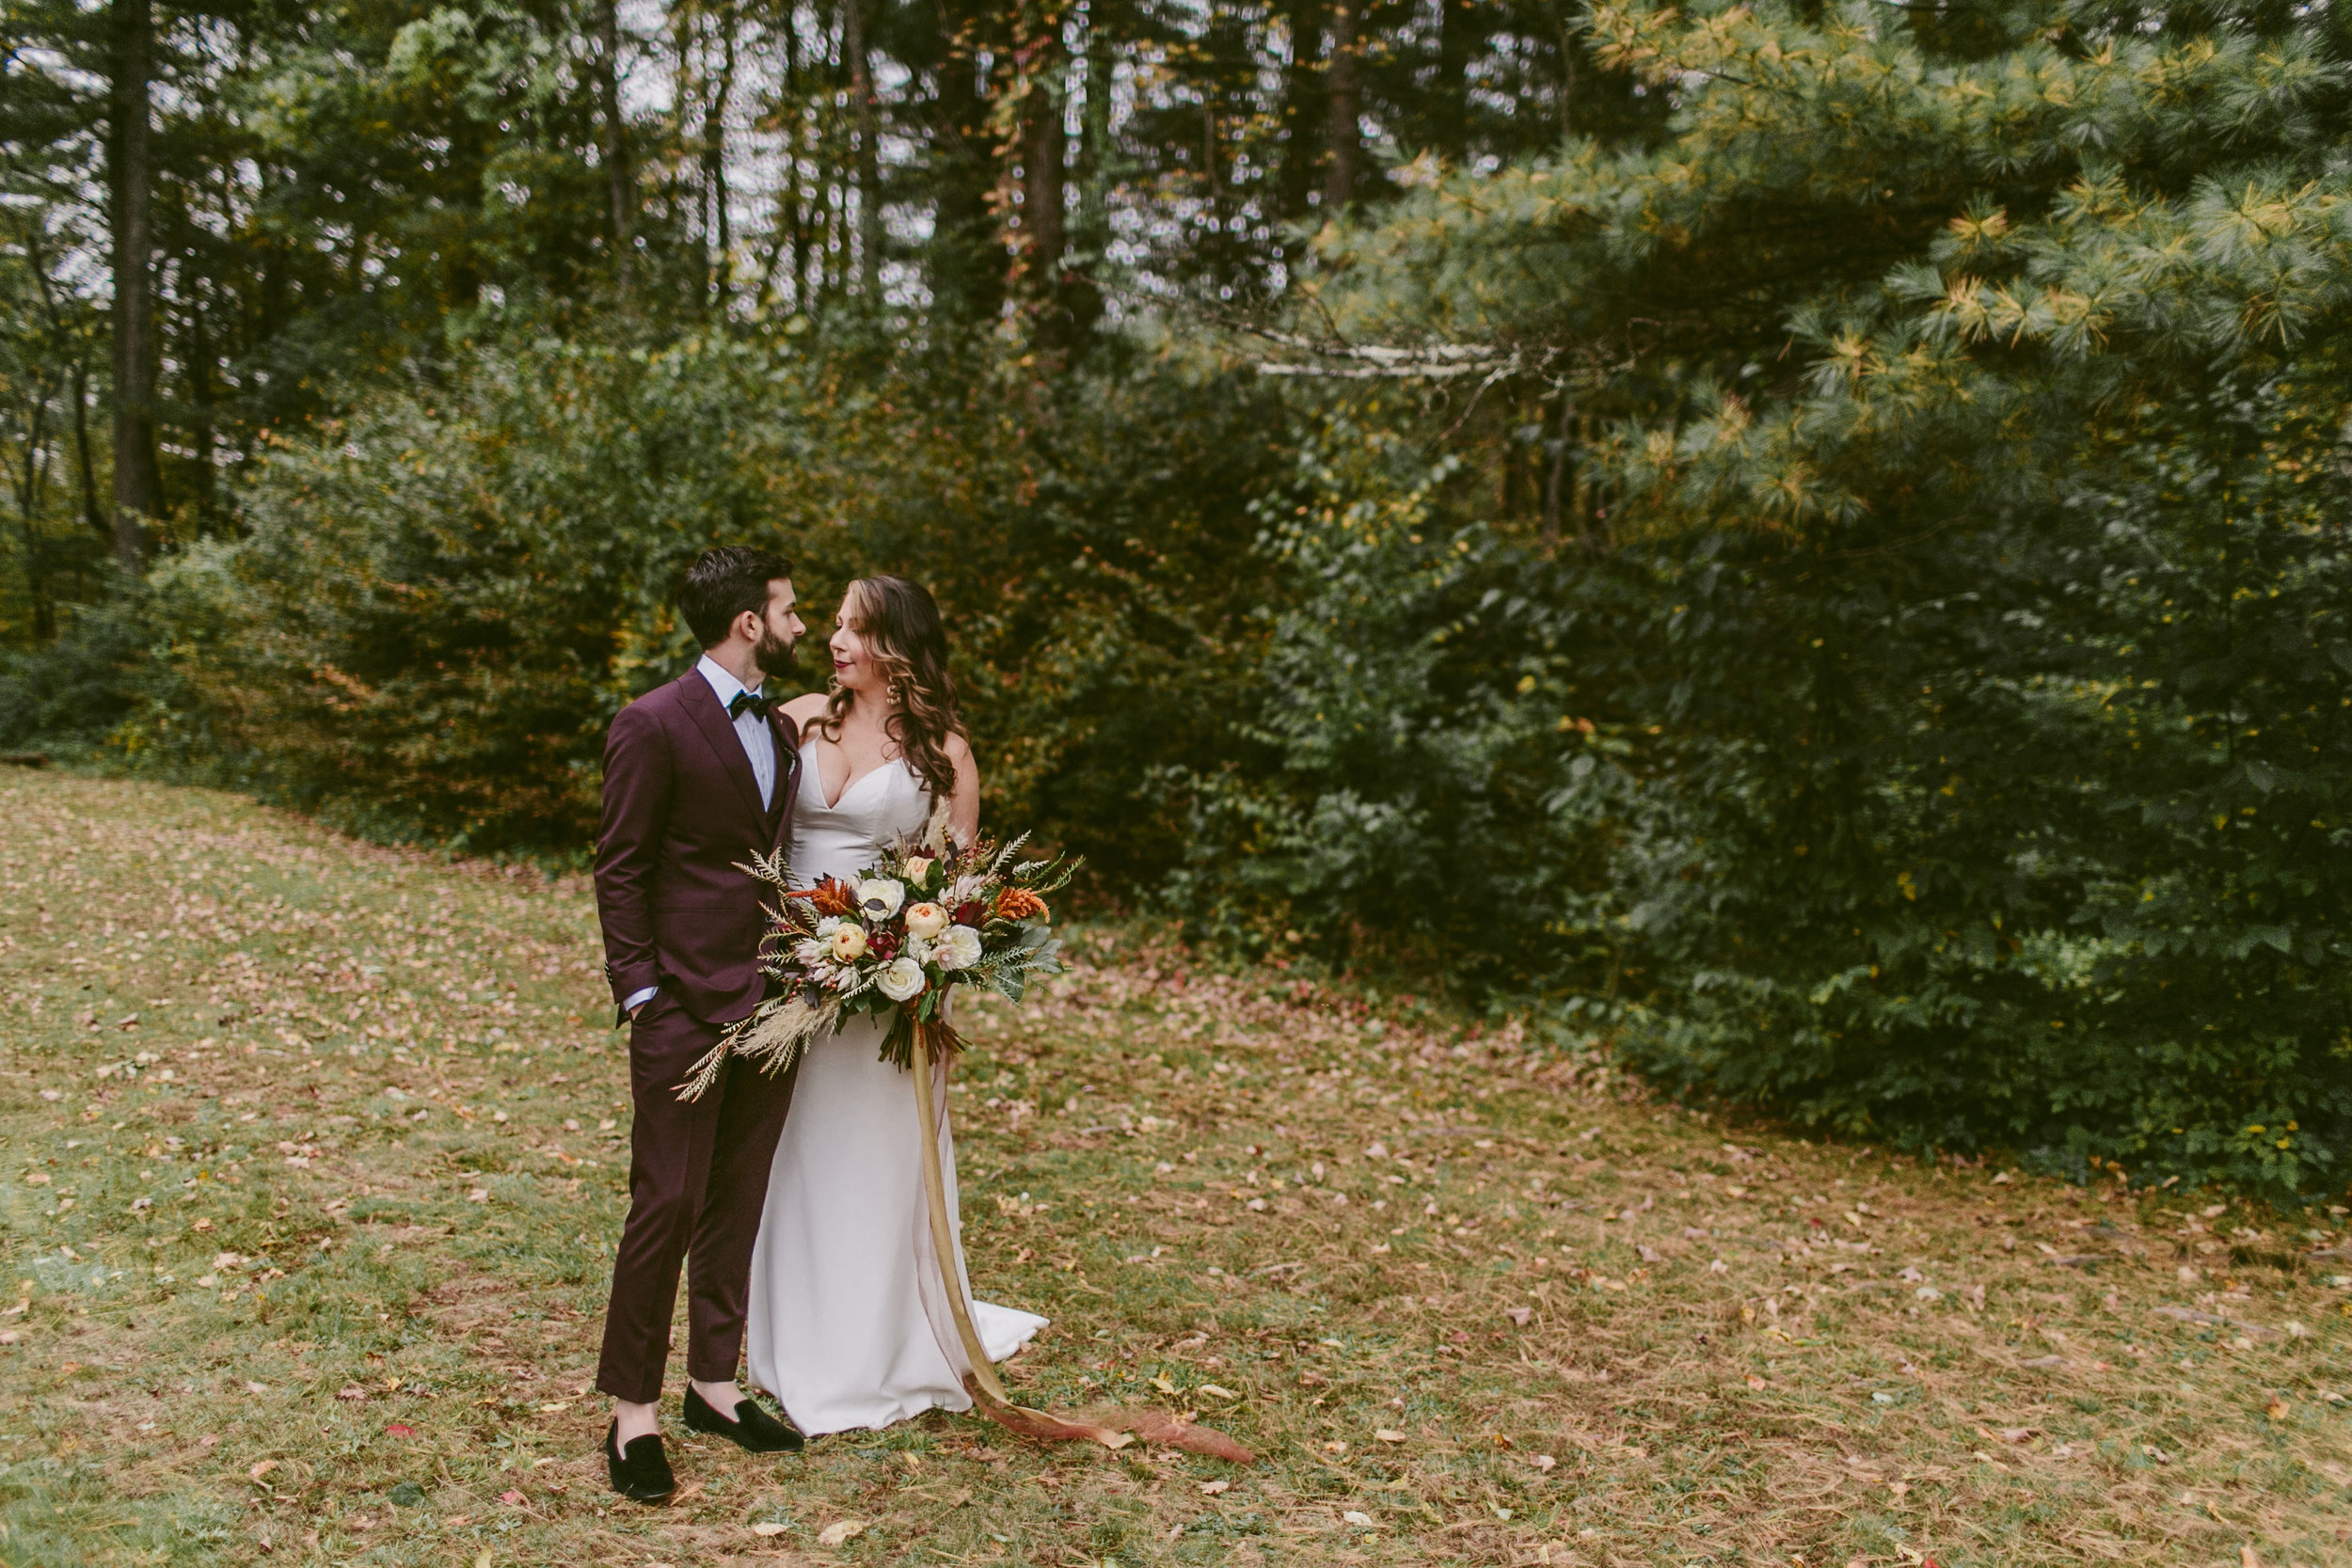 sarah + sean - As a wedding photographer, I have had a backstage view of wedding days for hundreds of couples, and know how essential a good day-of coordinator is to helping the couple actually enjoy their day. I've also had the advantage of seeing how the many local planners operate, and I knew without a doubt, Clover is the BEST.Jesse traveled to the Catskills and turned out to be such a perfect fit for our crew; her energy helped me stay calm and grounded when things started to get hectic. She managed the entire timeline, all of our vendors, and all of the logistics with such aplomb, that I barely noticed a thing as I glided through my day.Jesse made sure I was able to immerse myself in the magic of the day and be fully present for everyone and without a care in the world. If there were any bumps in the road, I still am not aware of them, because Jesse so beautifully protected me from it all.Please, if you are considering a planner, don't learn things the hard way: this team is exactly what you need if you want the wedding experience of your dreams!